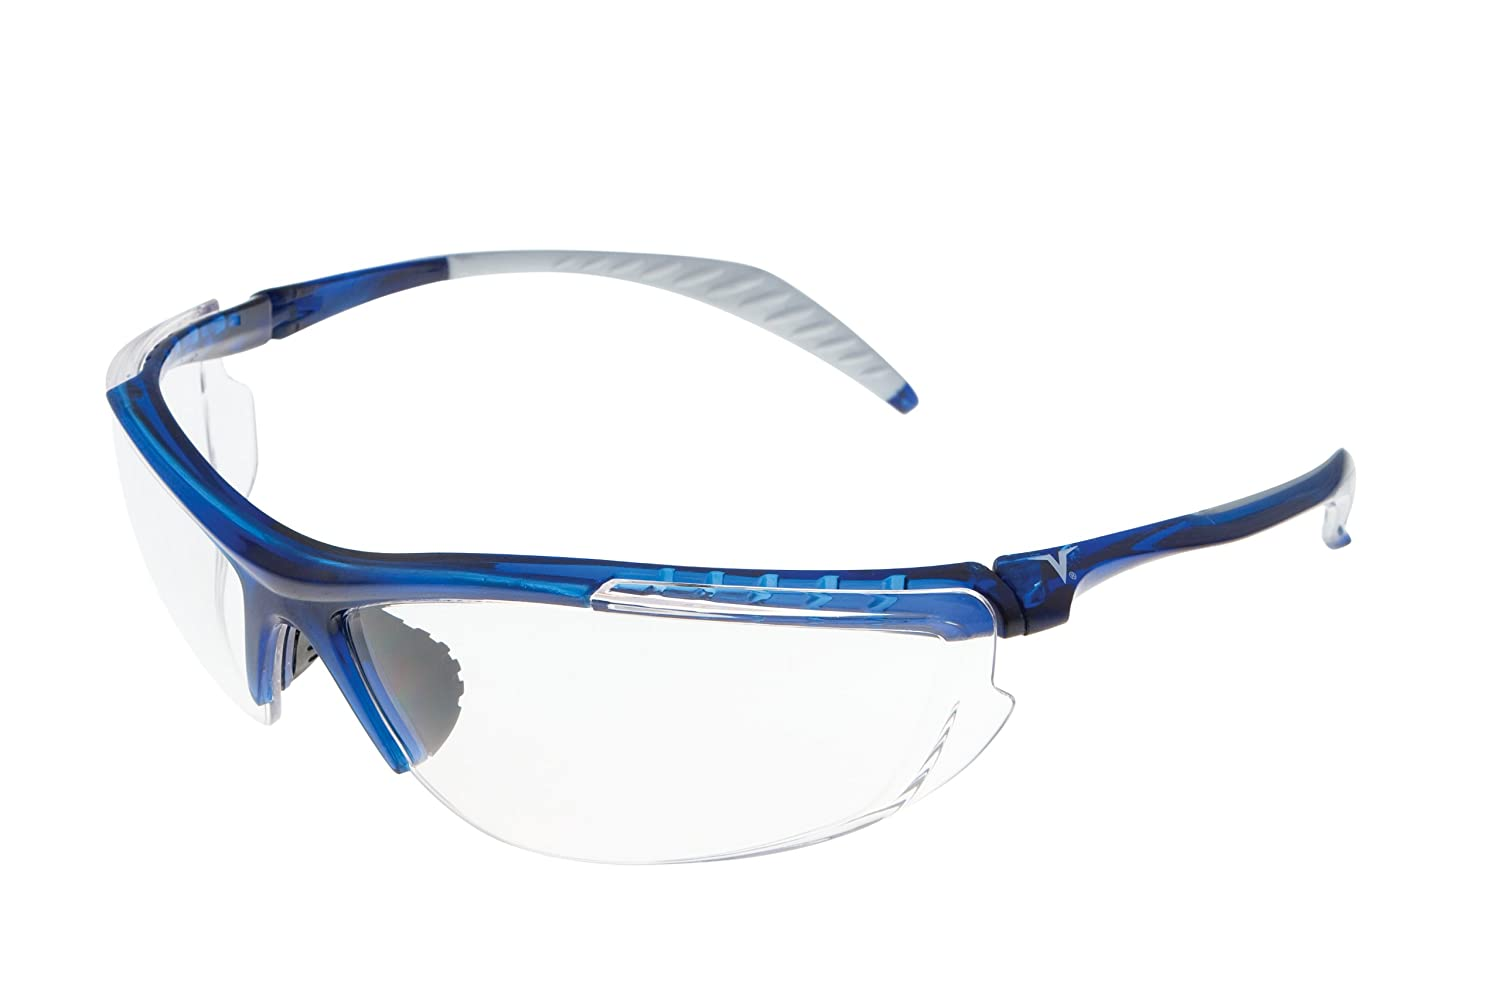 eye goggles  Encon Wraparound Veratti 307 Safety Glasses, Clear Lens ...